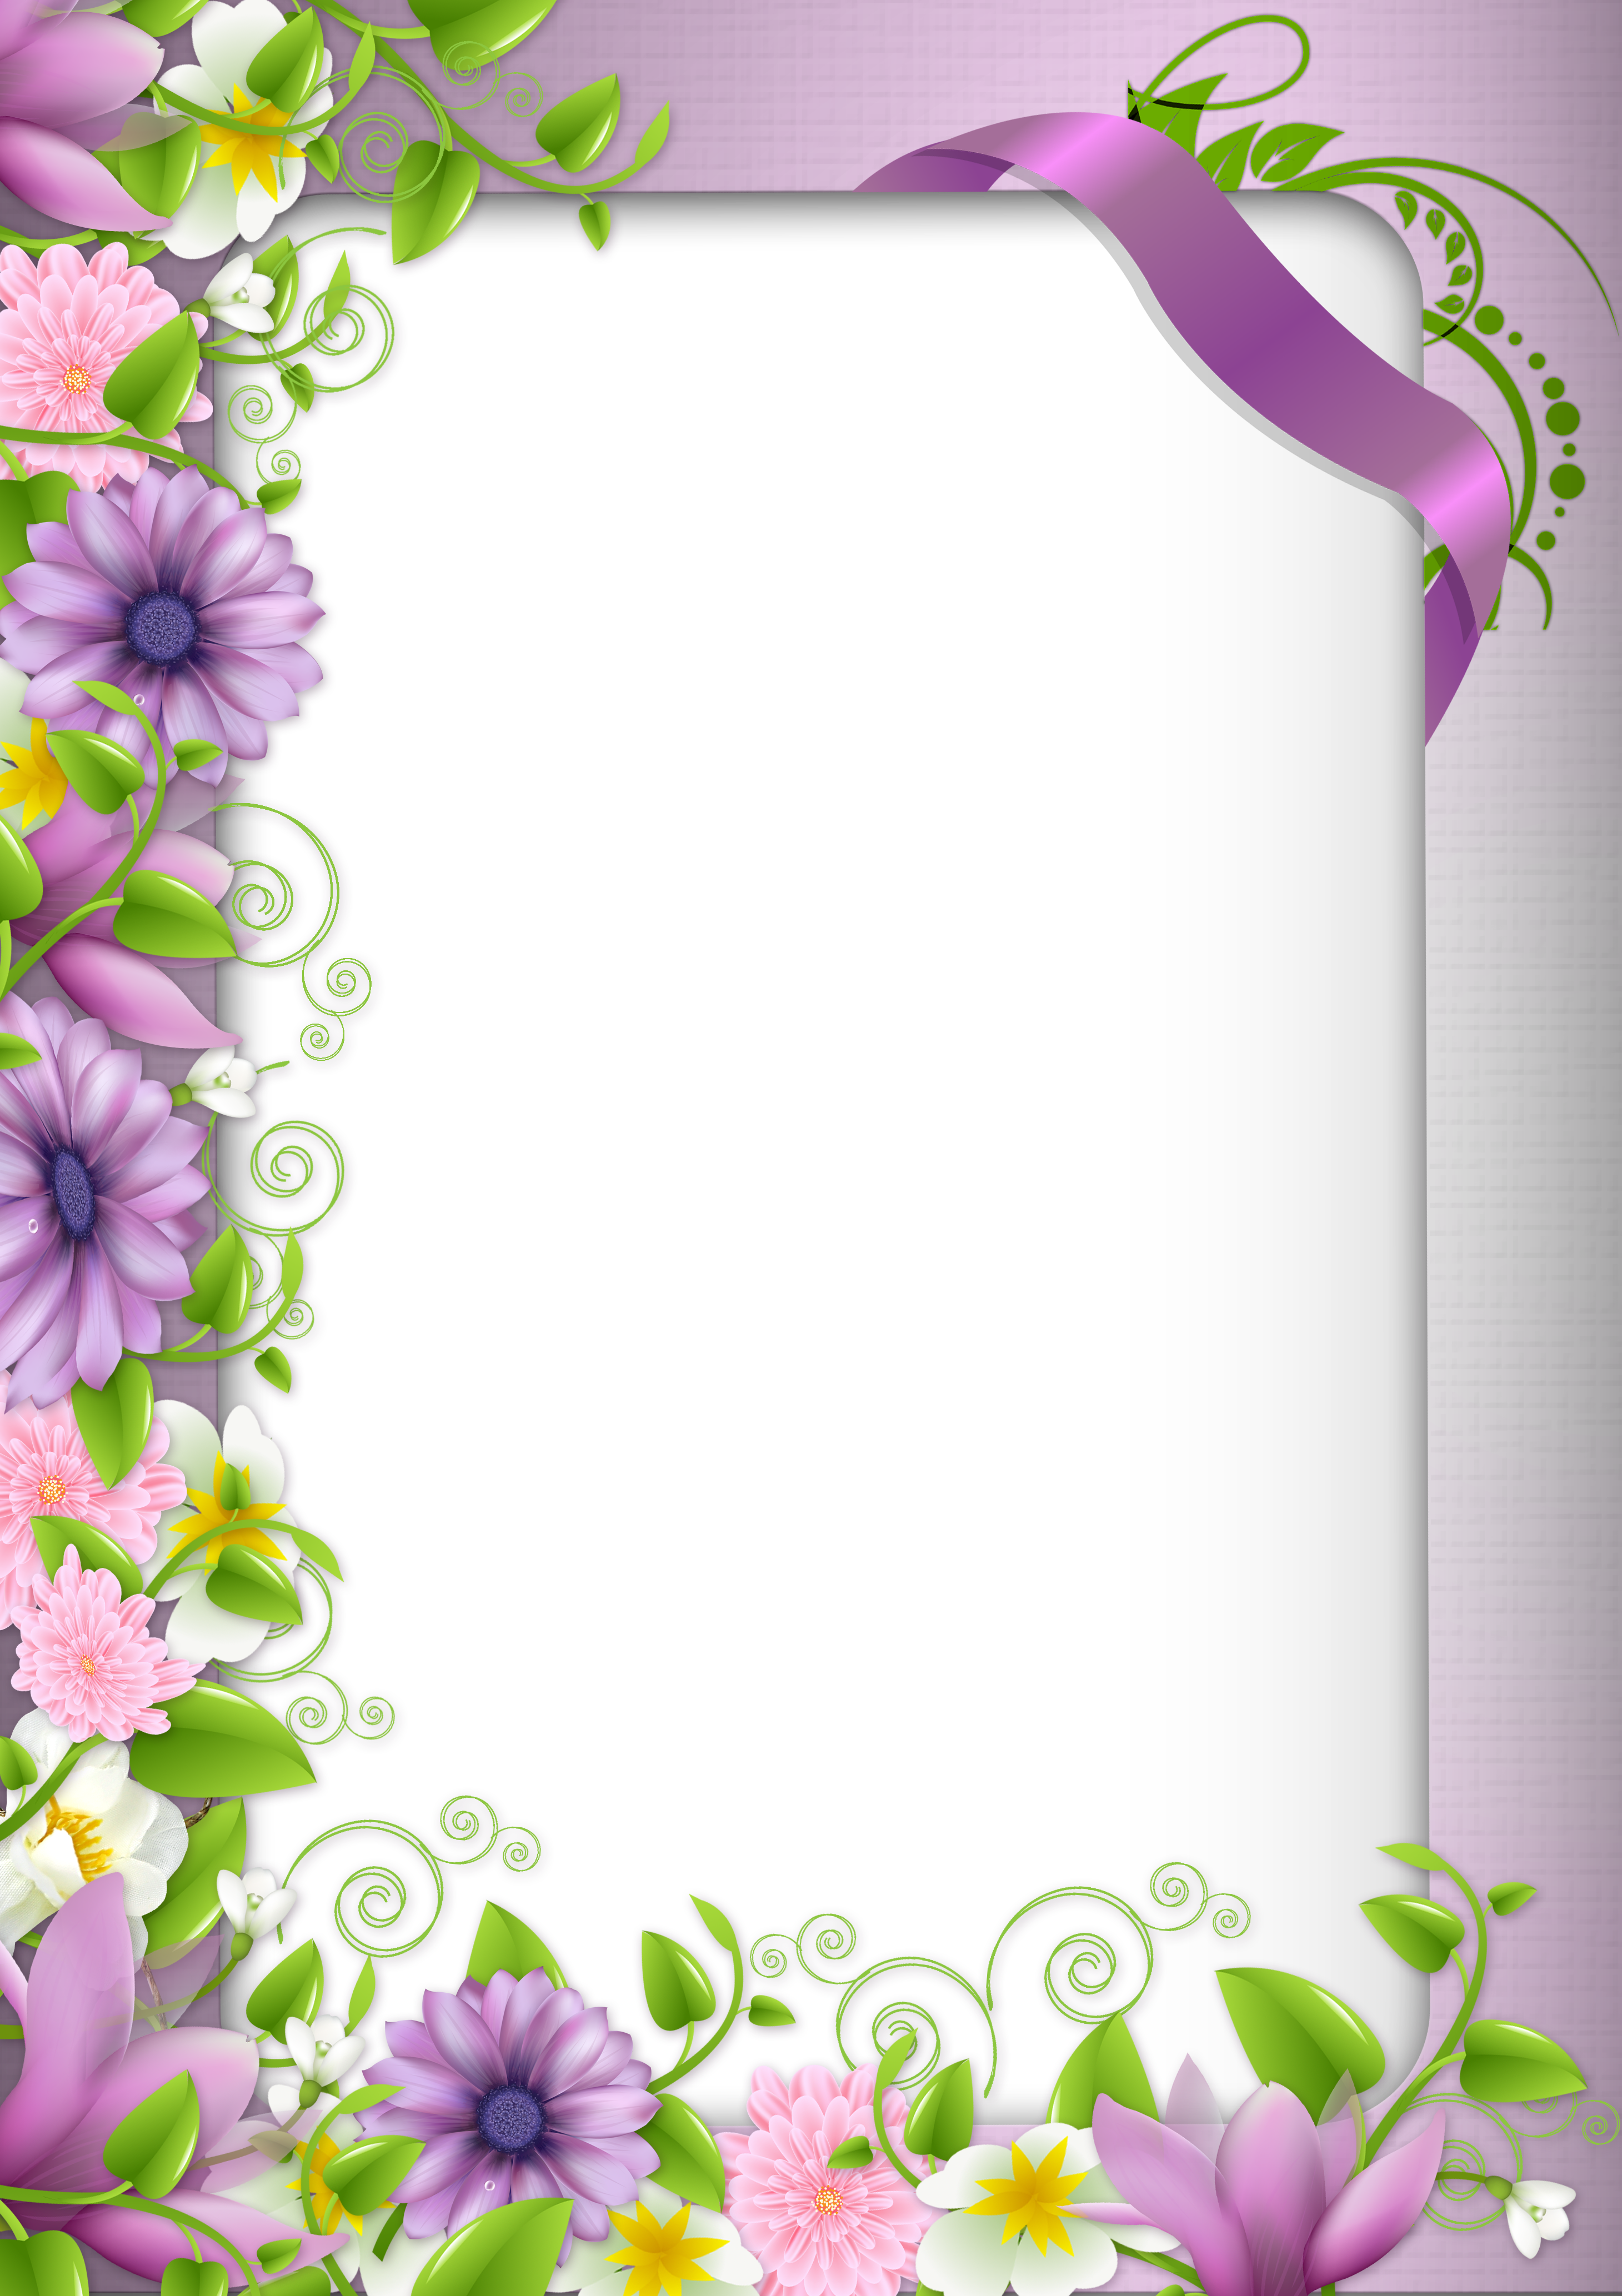 Transparent PNG Photo Frame with Purple Flowers.